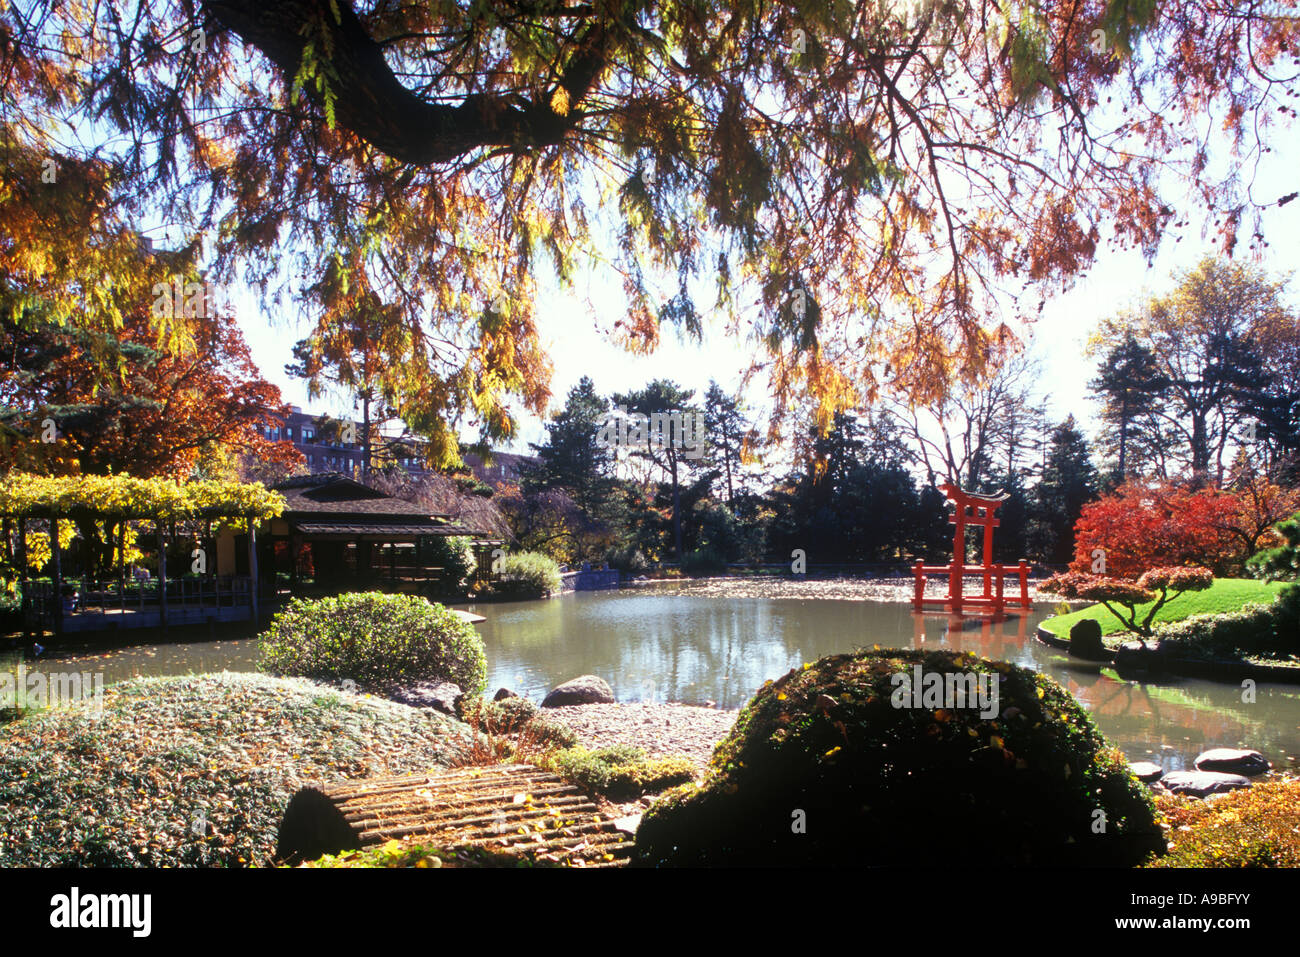 BRIDGE JAPANESE GARDEN BROOKLYN BOTANICAL GARDEN NEW YORK CITY USA Stock Photo Royalty Free ...